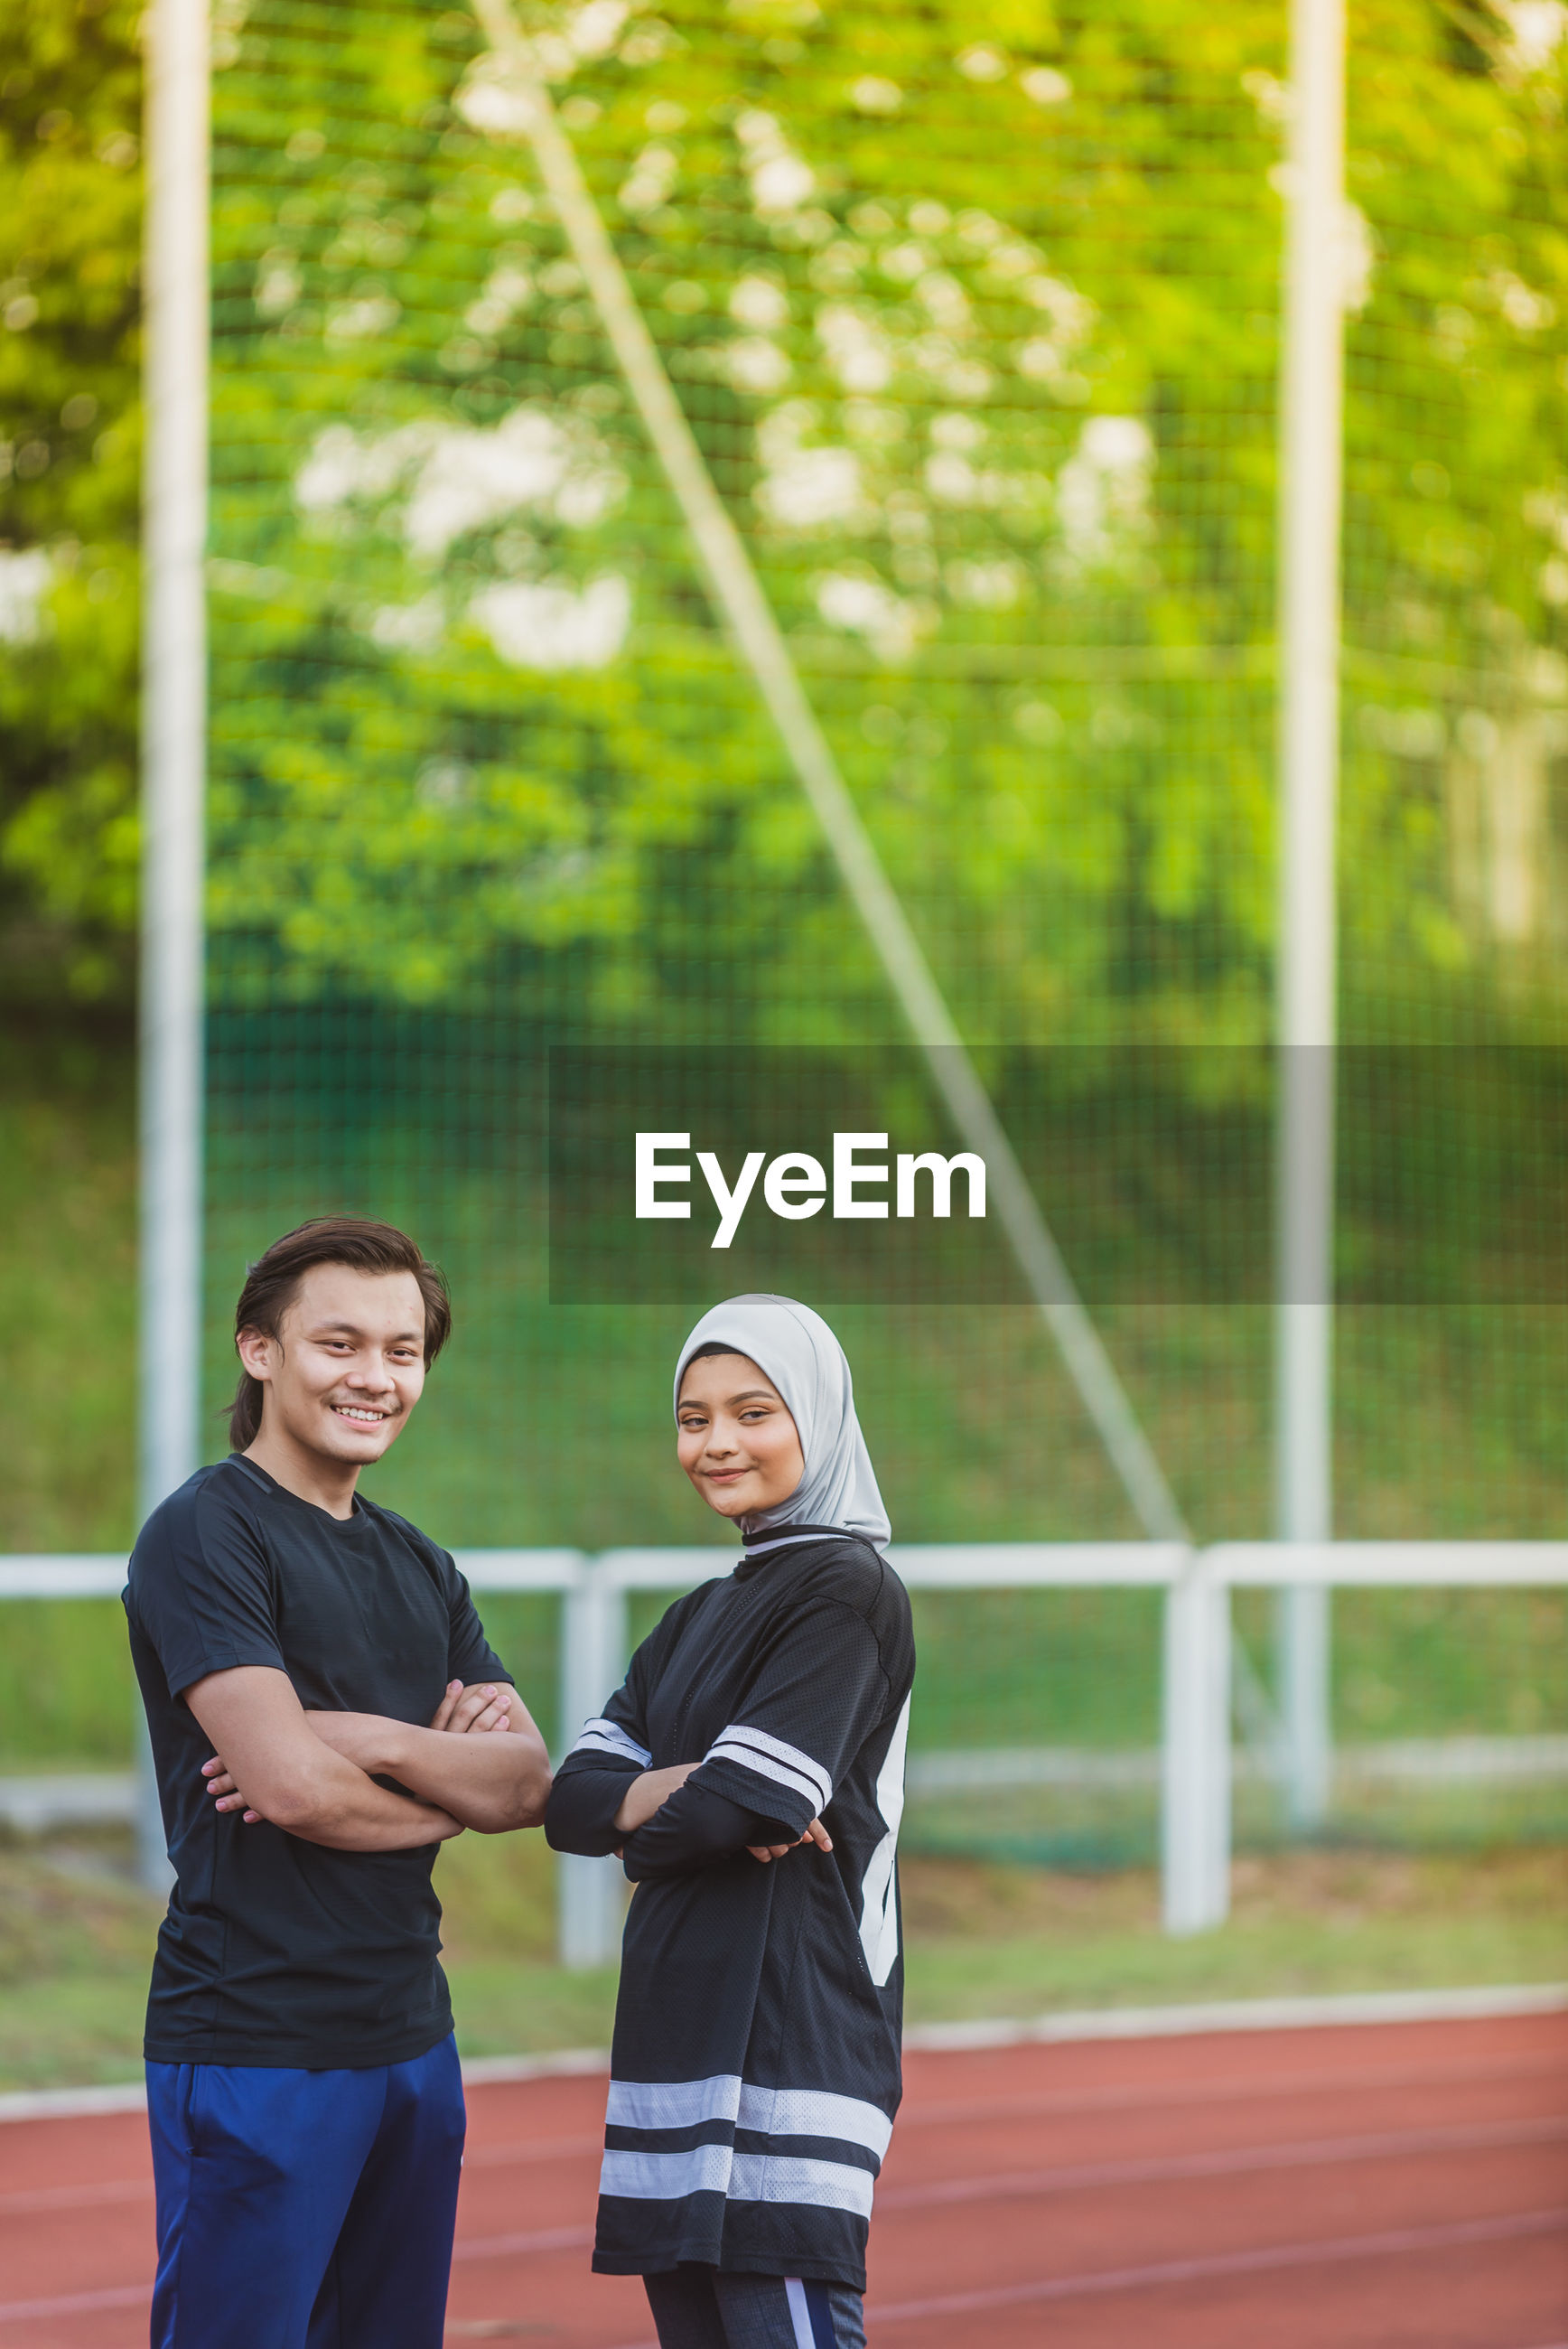 Portrait of couple standing on running track